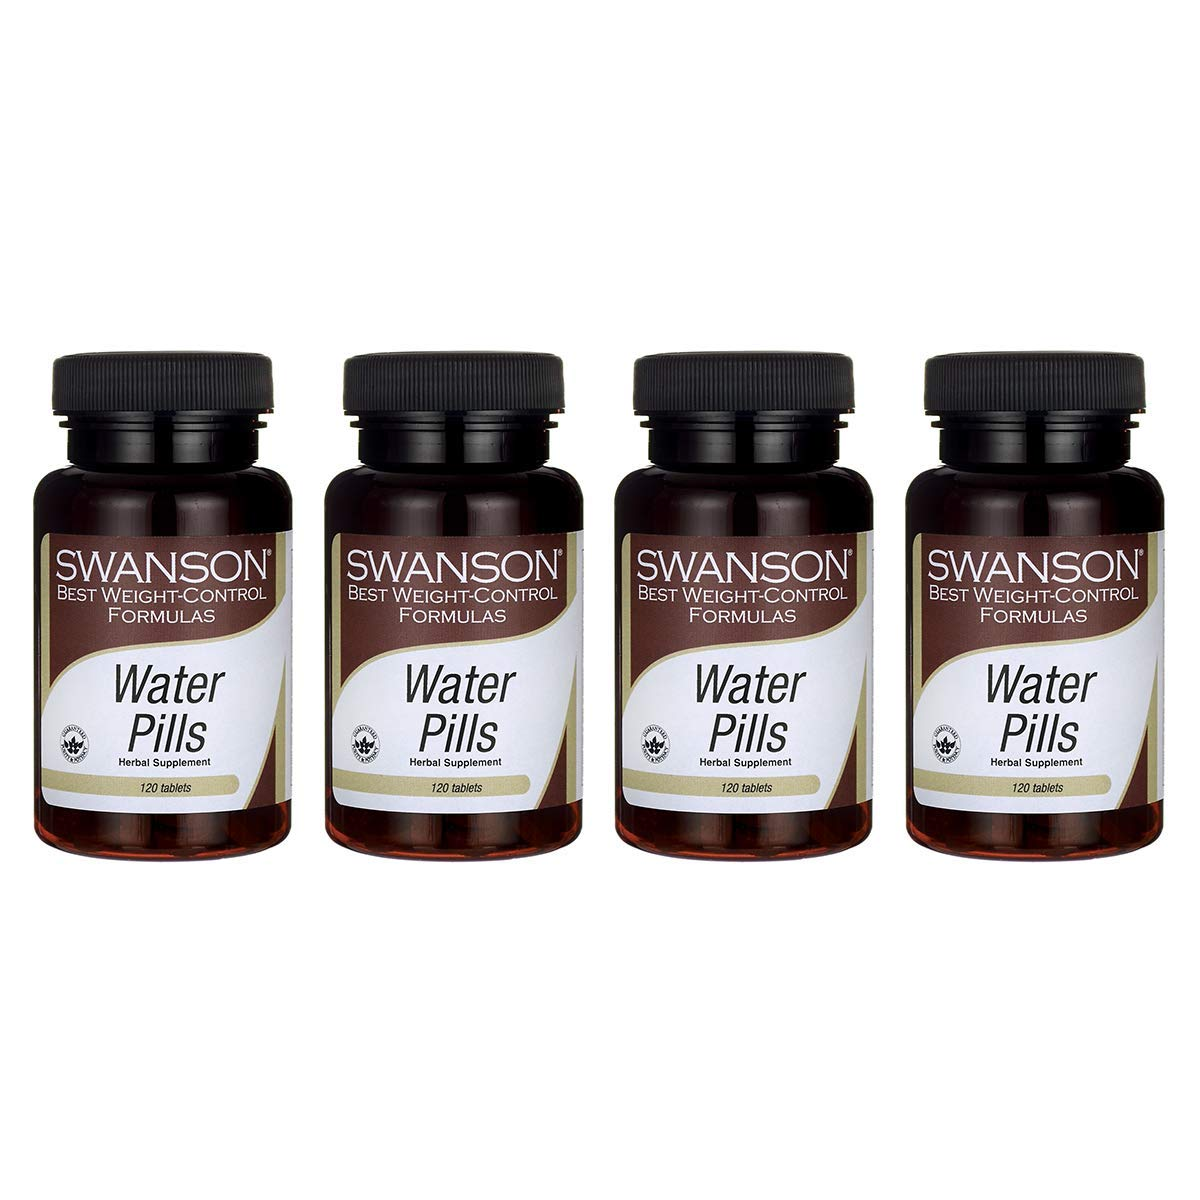 Swanson Water Pills 120 Tabs (4 Pack)